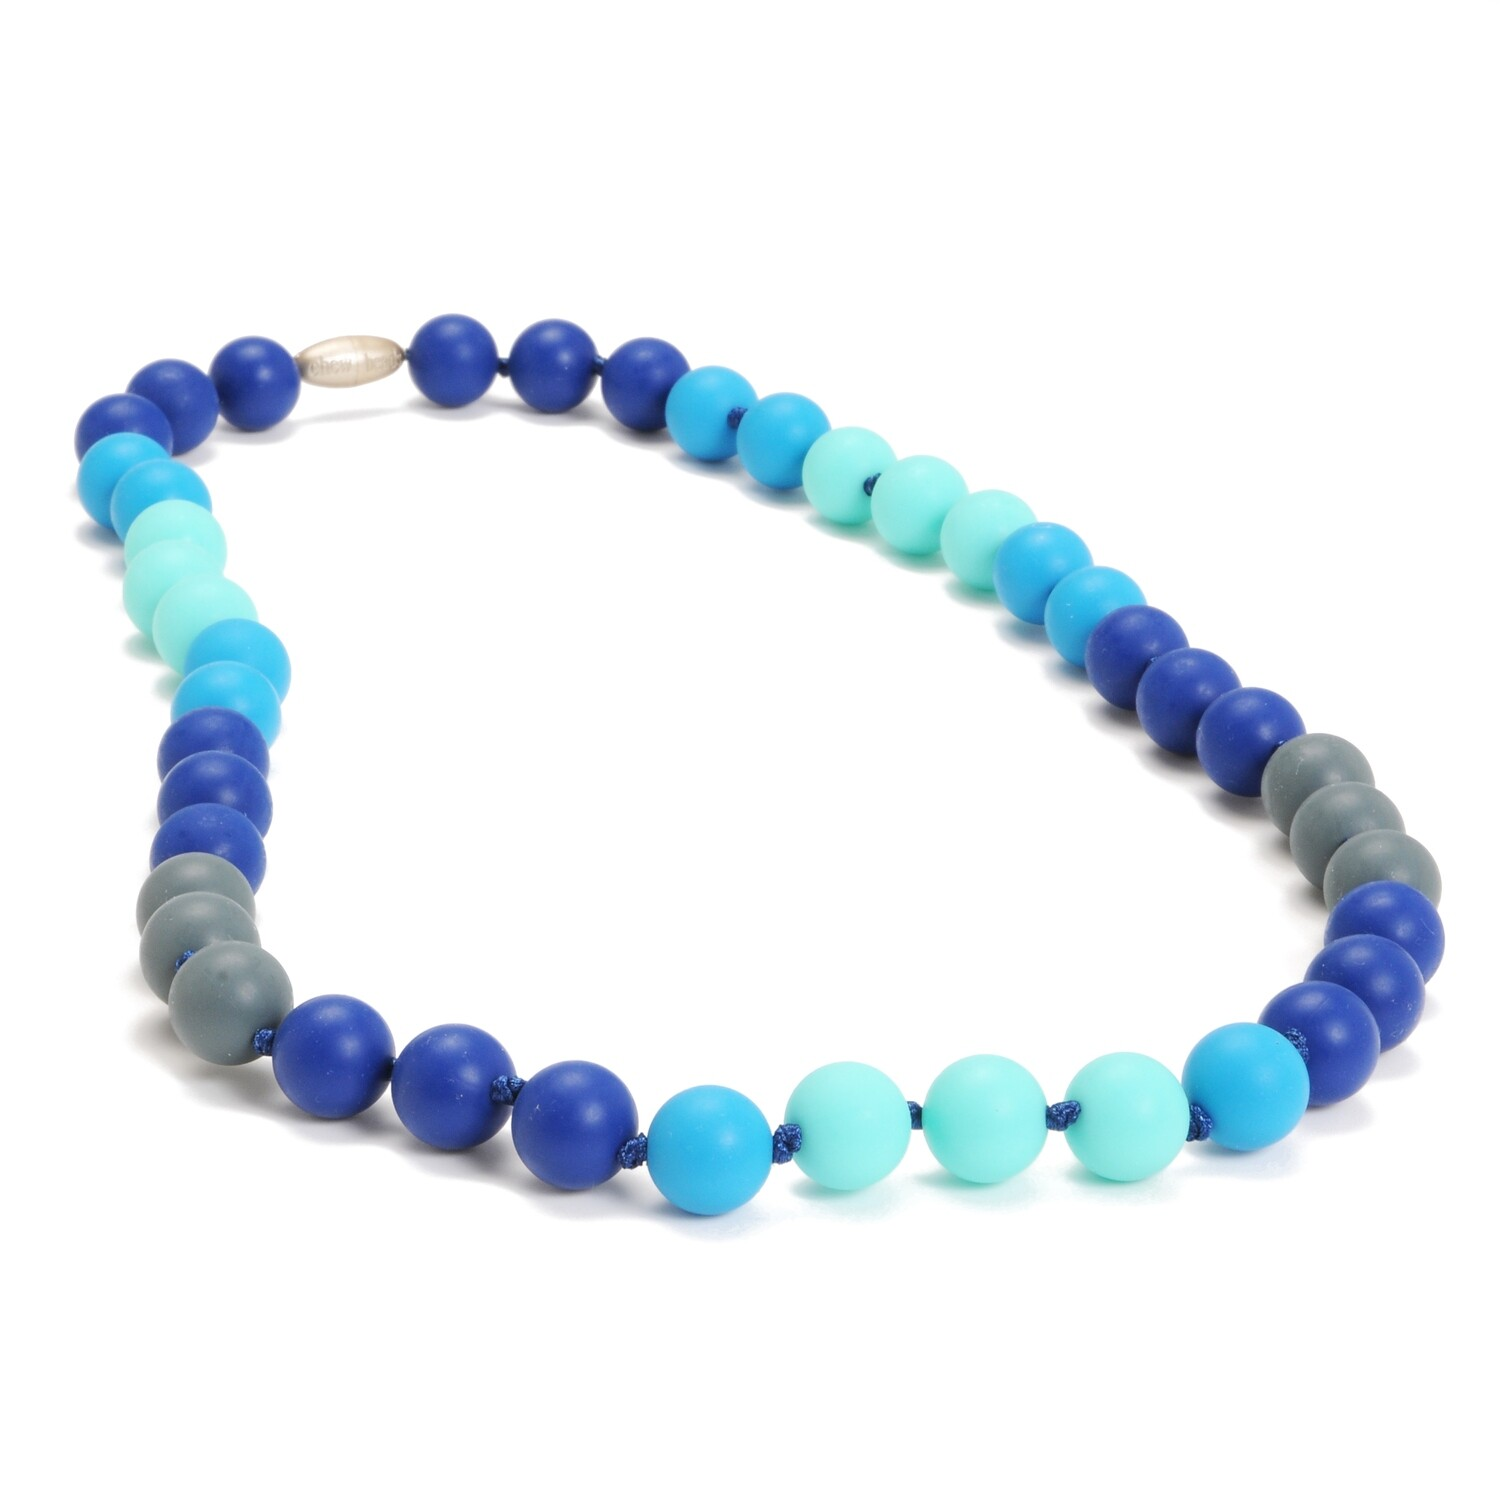 Bleecker Necklace - Turquoise